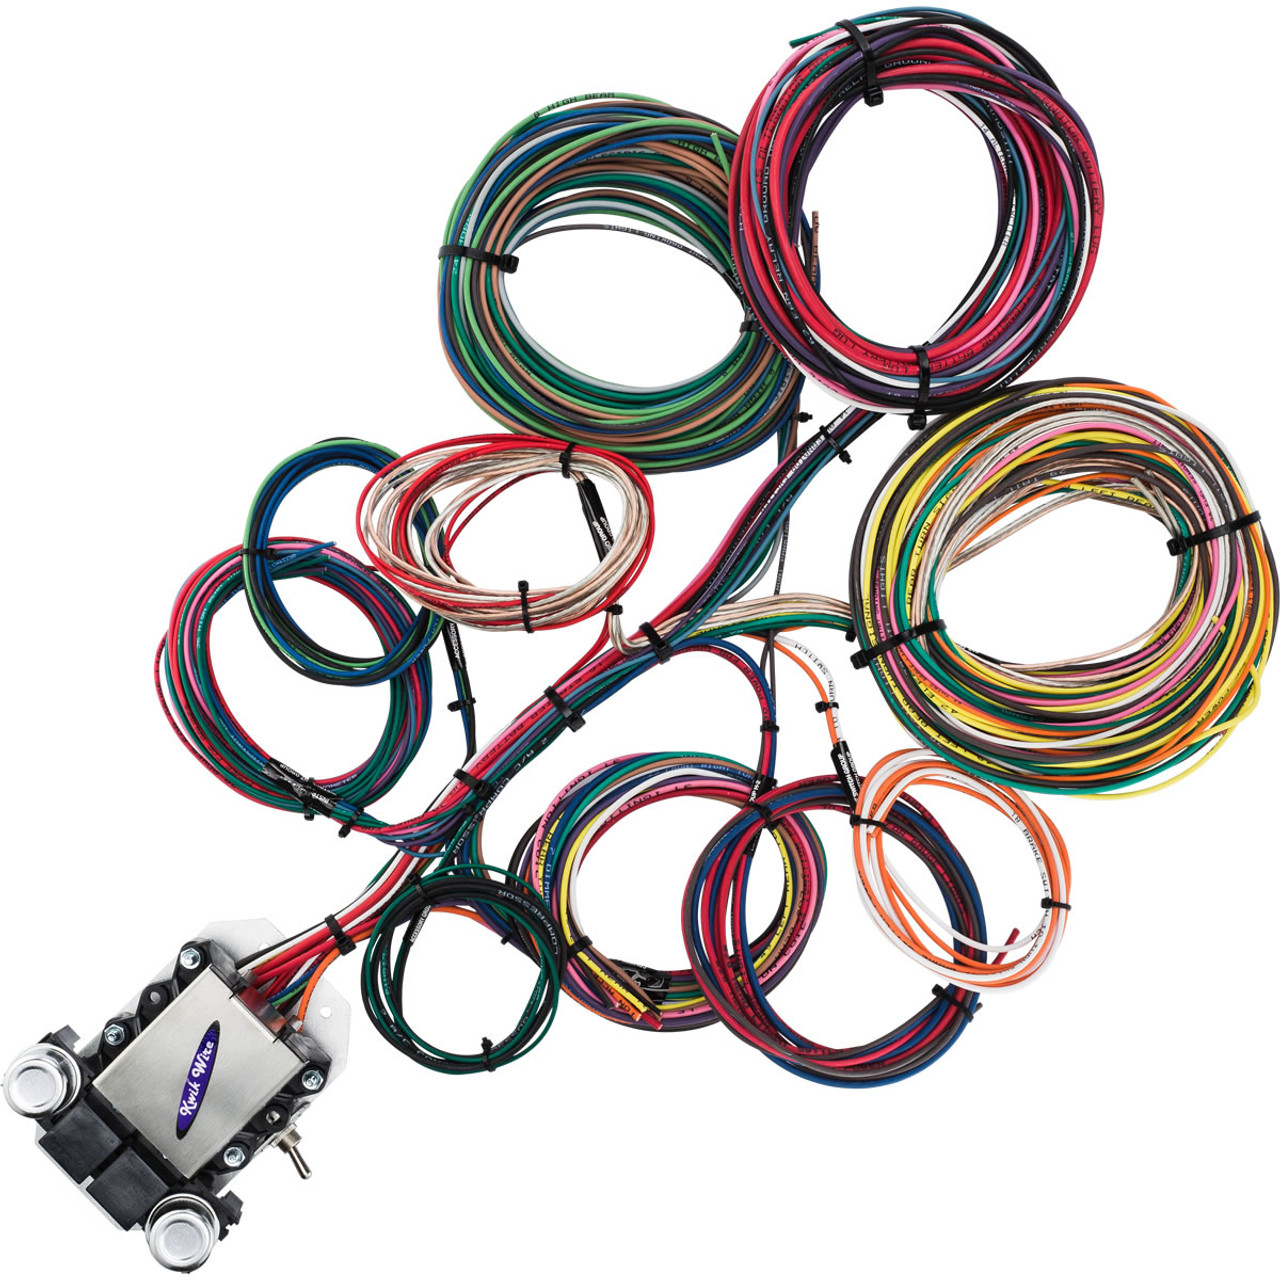 medium resolution of 14 circuit wire harness kwikwire com electrify your ride painless wire harness installation instructions 10206 wire harness instruction